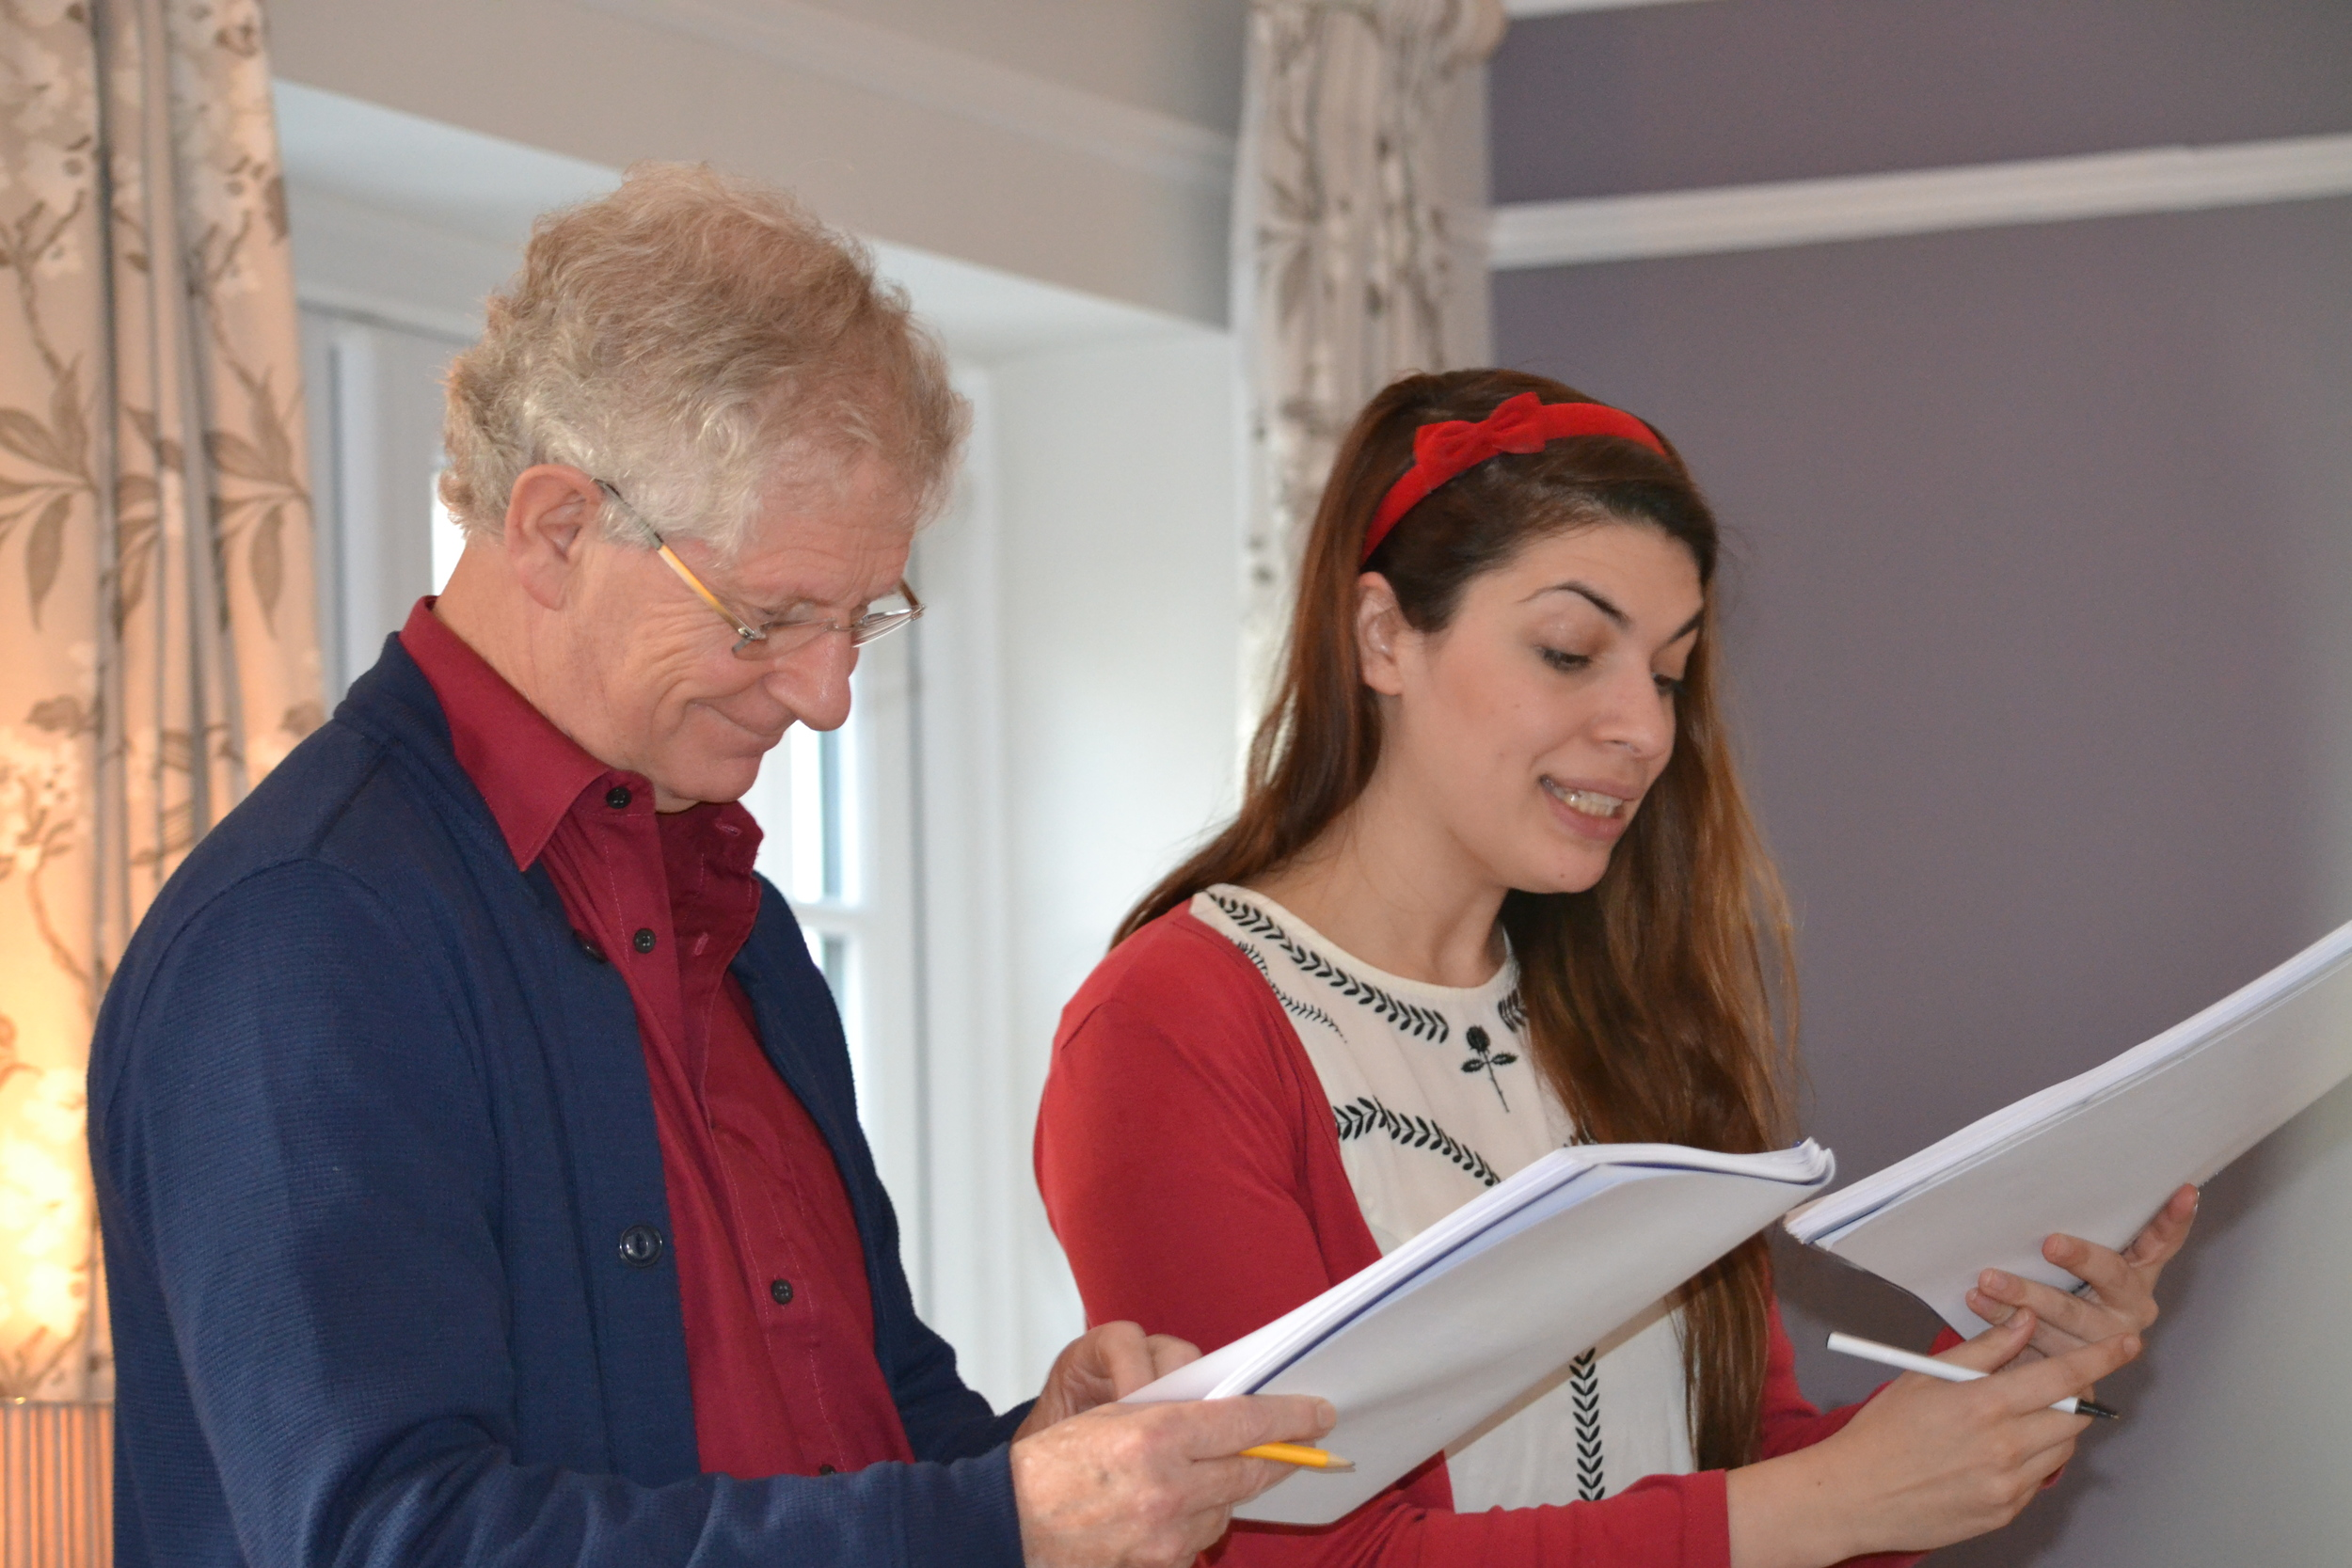 Peter Pearson  will portray Lord Atkin, while  Jess Hadleigh  will play Betty, Lord Atkin's daughter.